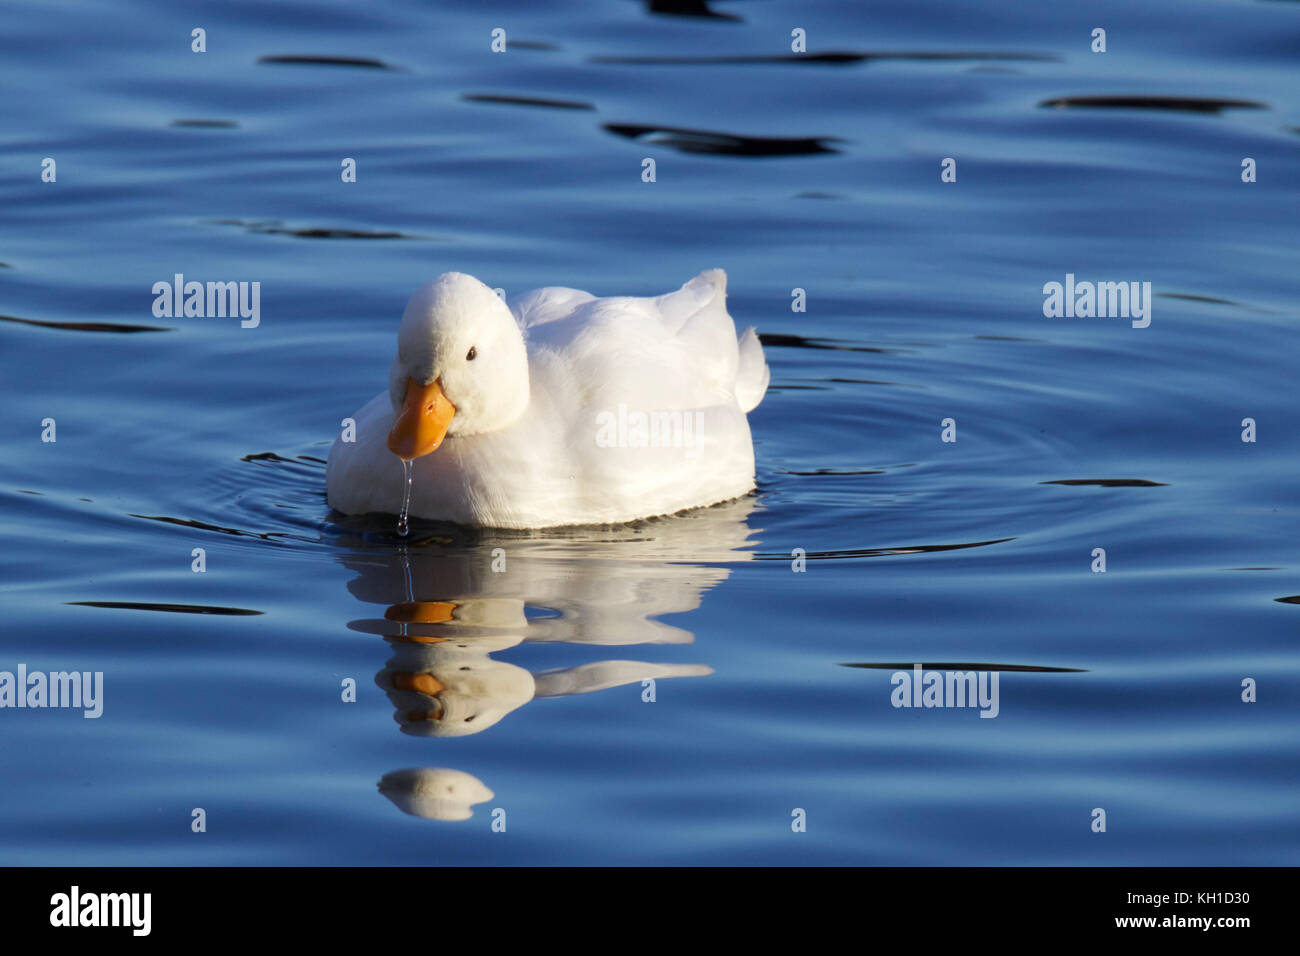 Little white duck swimming on blue water - Stock Image